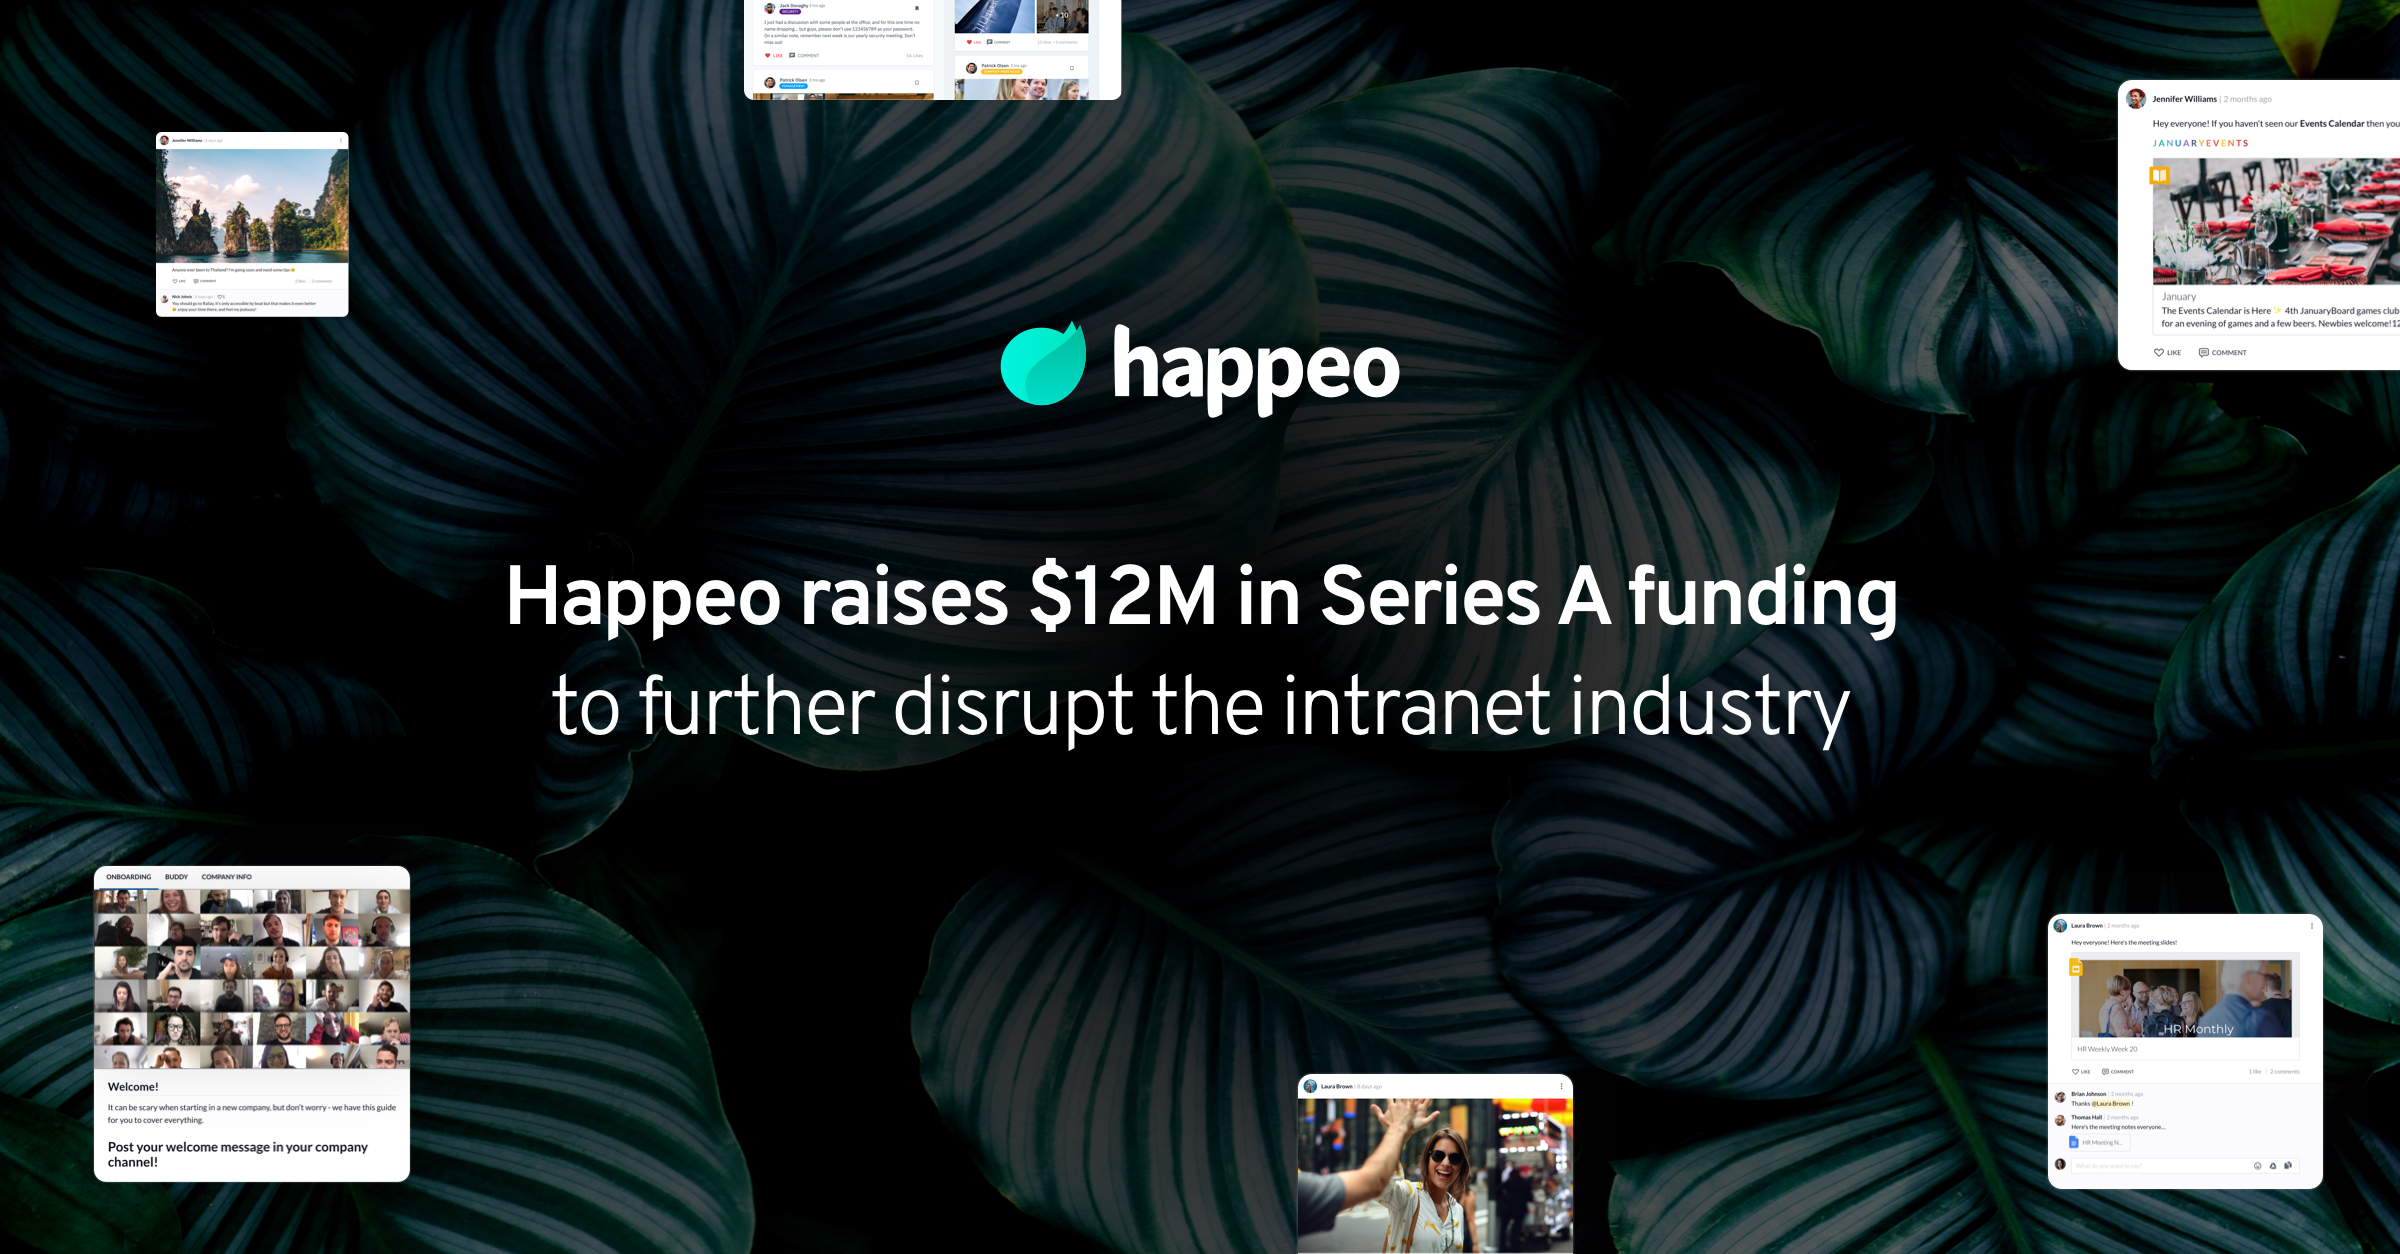 Happeo raises $12M in Series A funding to further disrupt the intranet industry